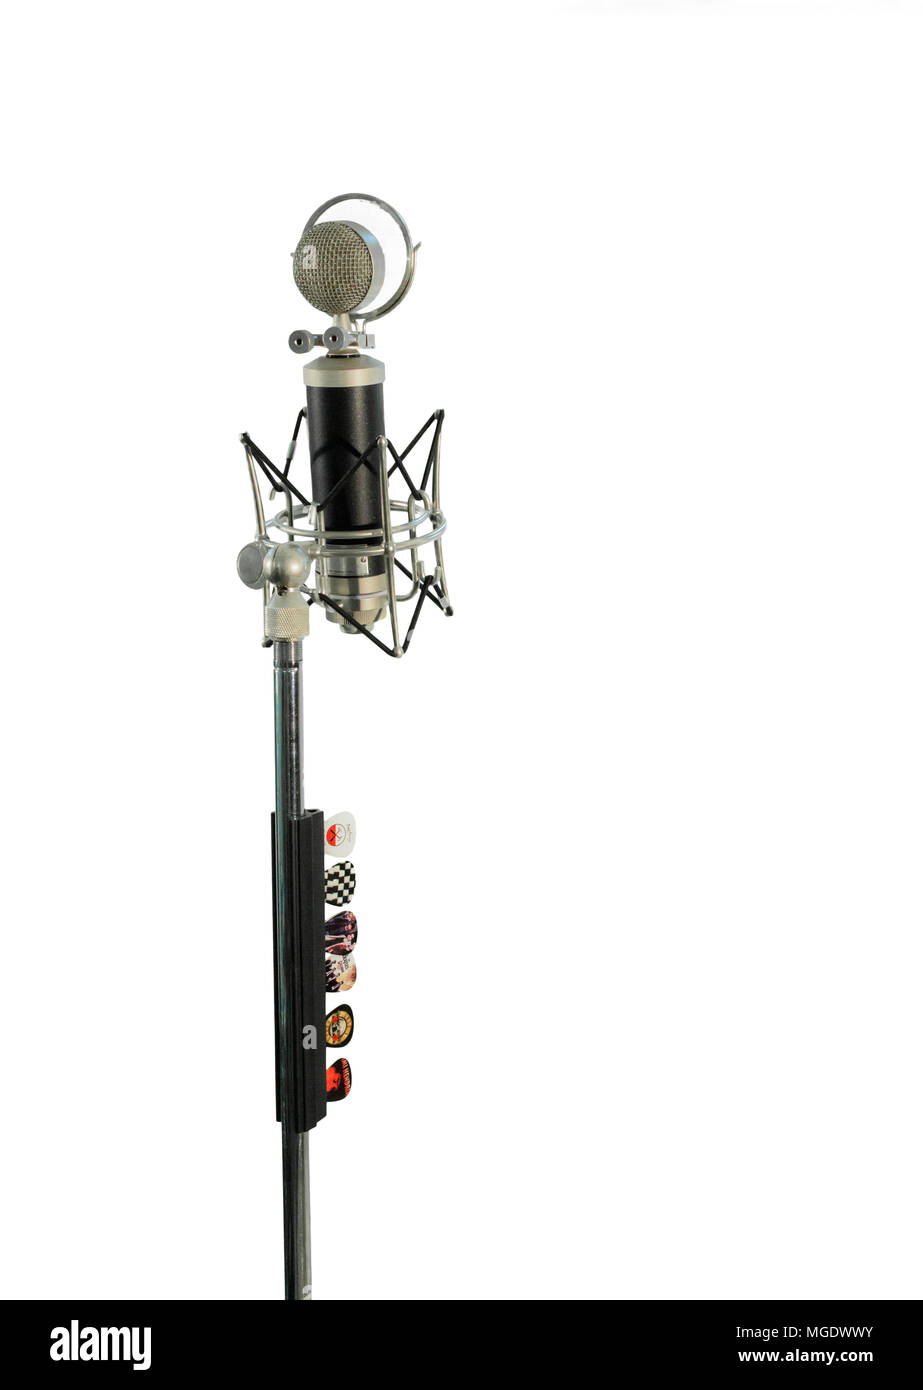 Vocal condenser microphone with wind screen isolated on white background. - Stock Image